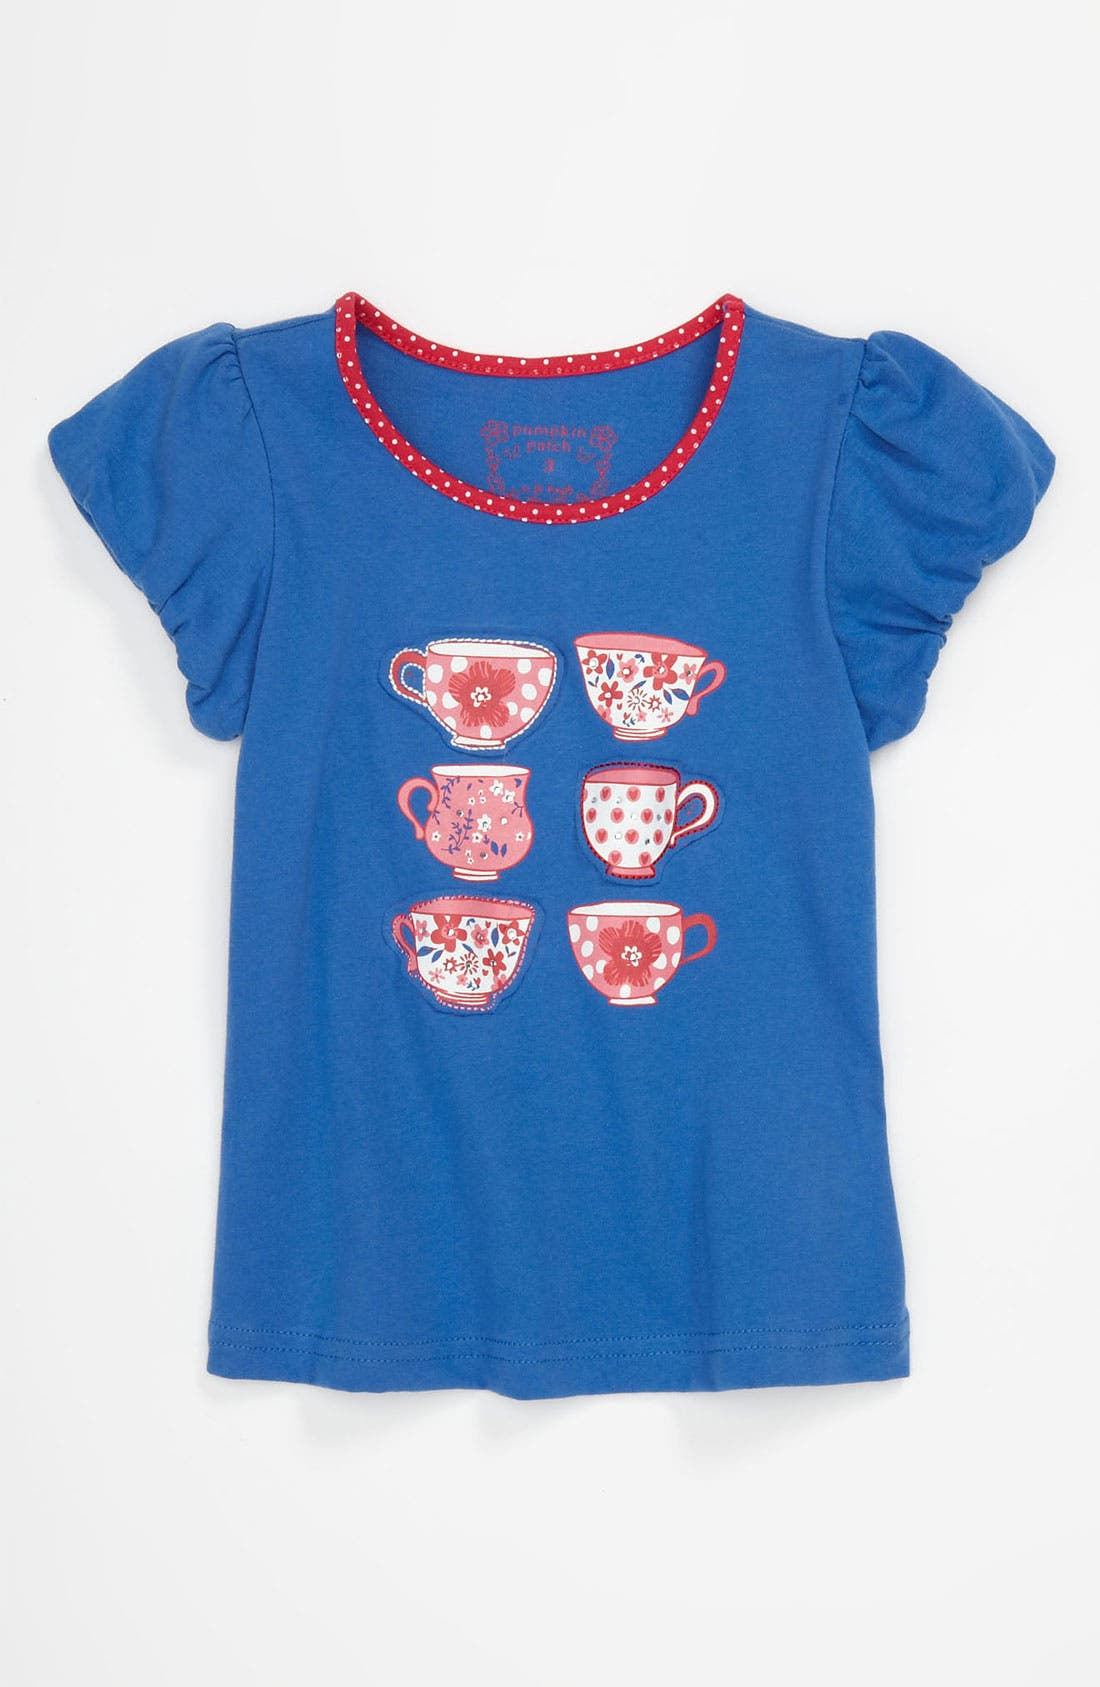 Main Image - Pumpkin Patch 'Teacup' Shirt (Toddler)